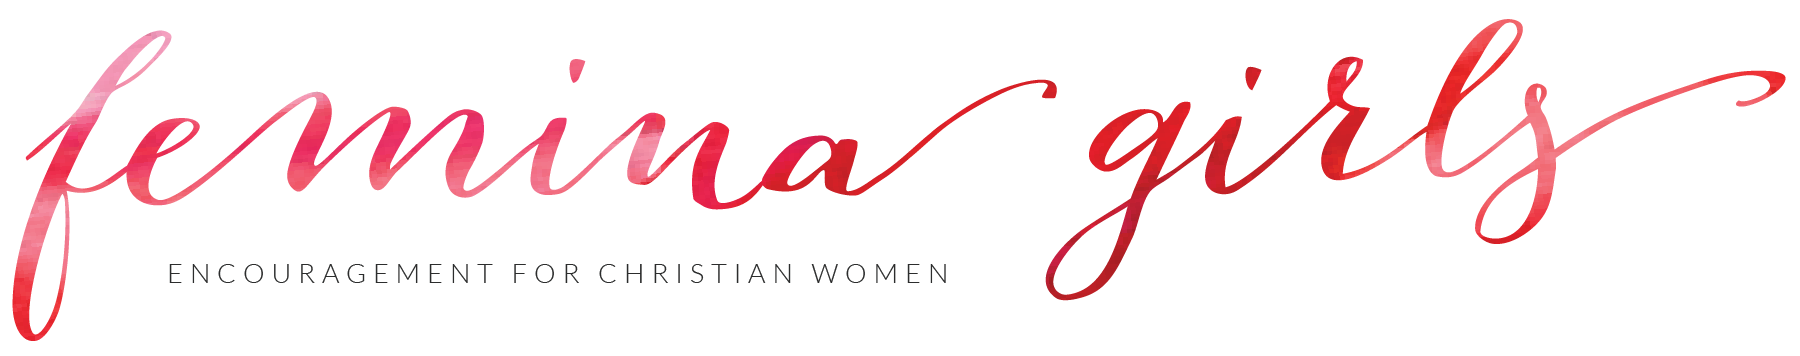 Femina - encouragement for Christian women